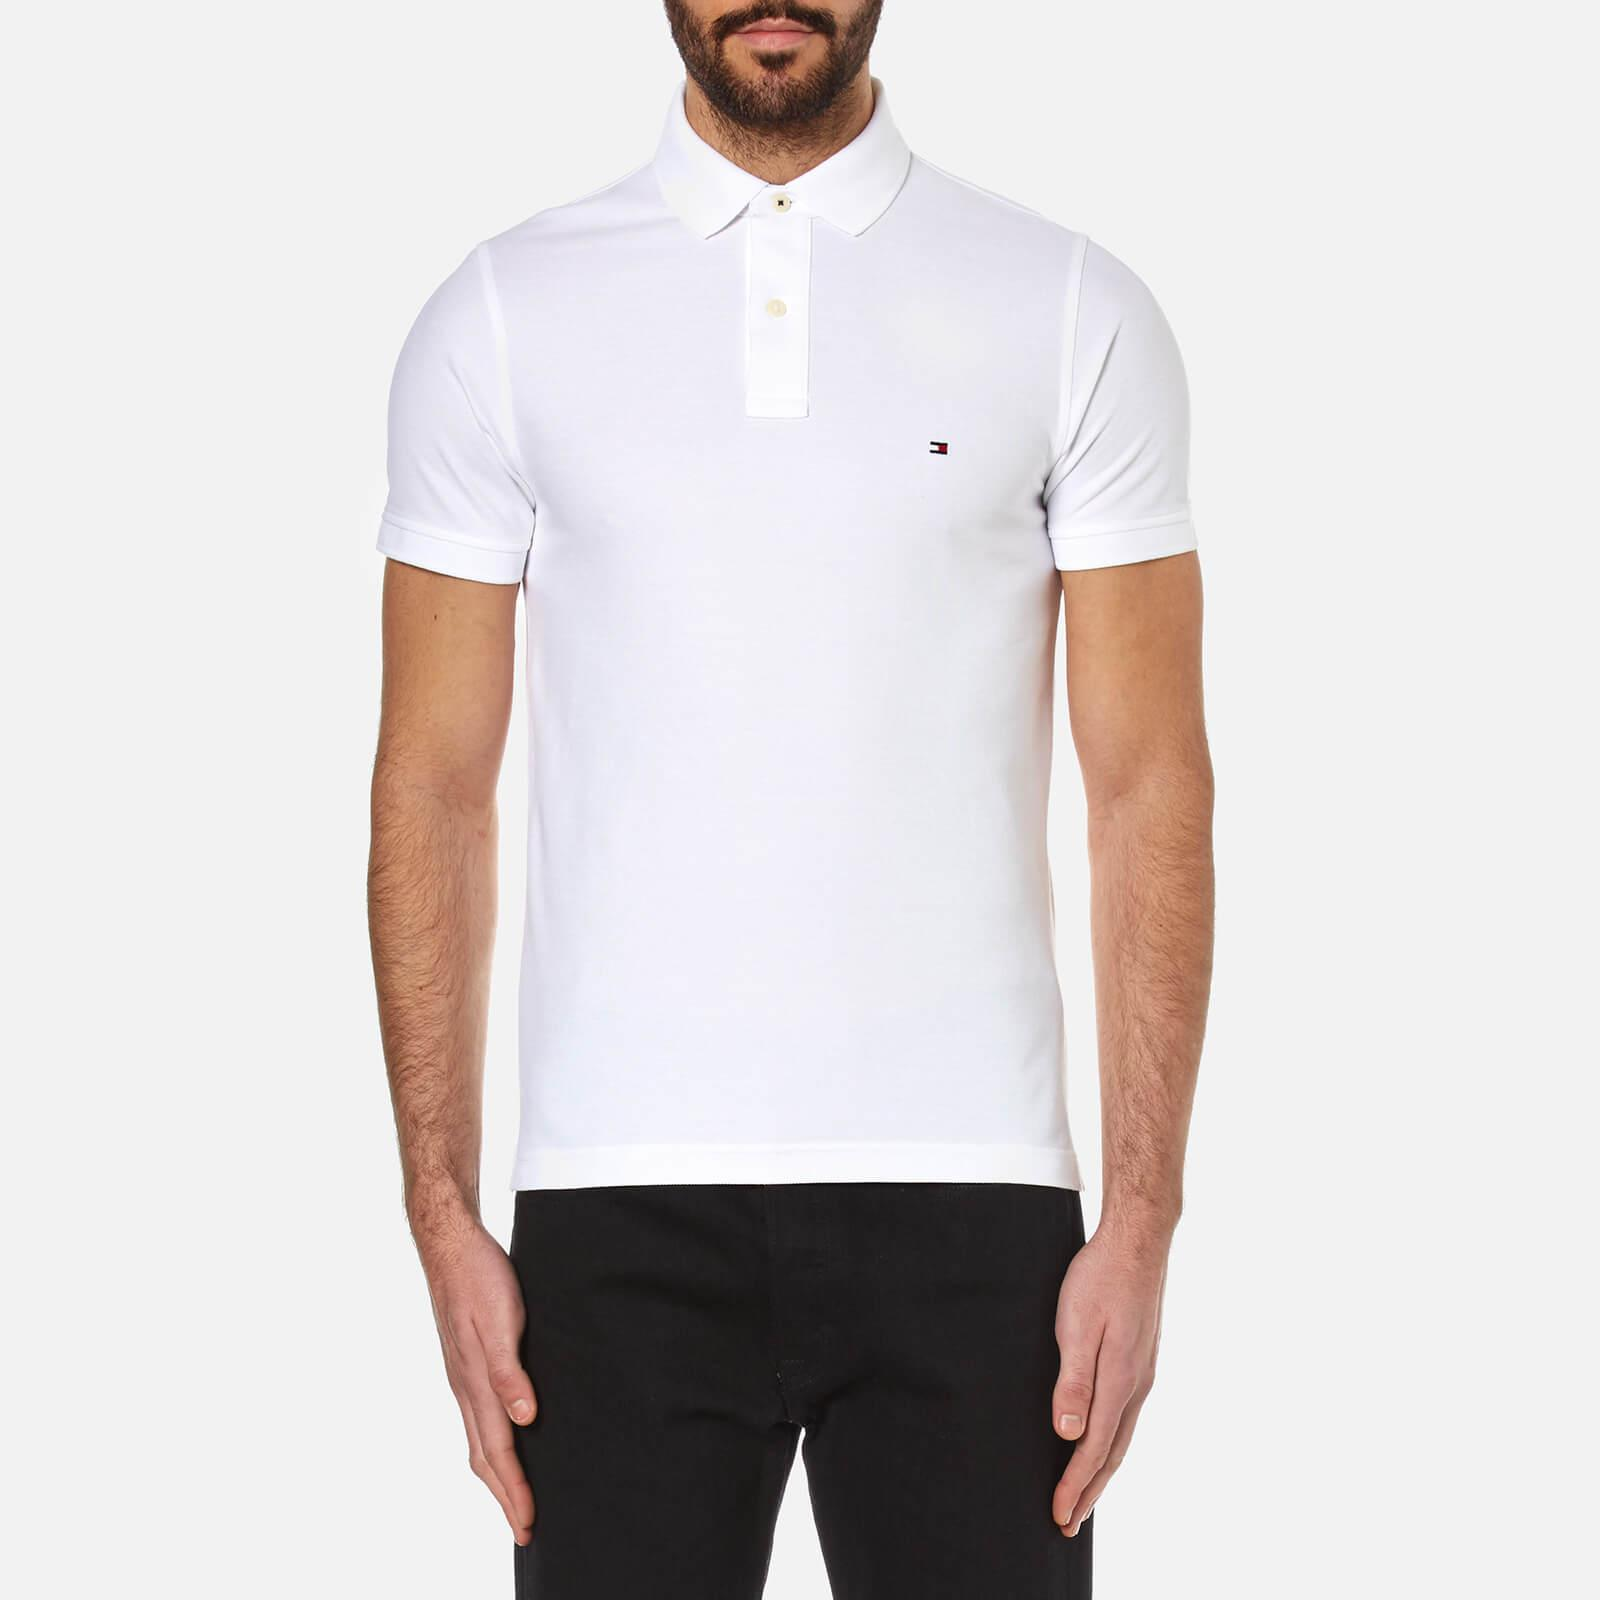 11857b187090 Tommy Hilfiger White Slim Fit Polo Shirt in White for Men - Lyst